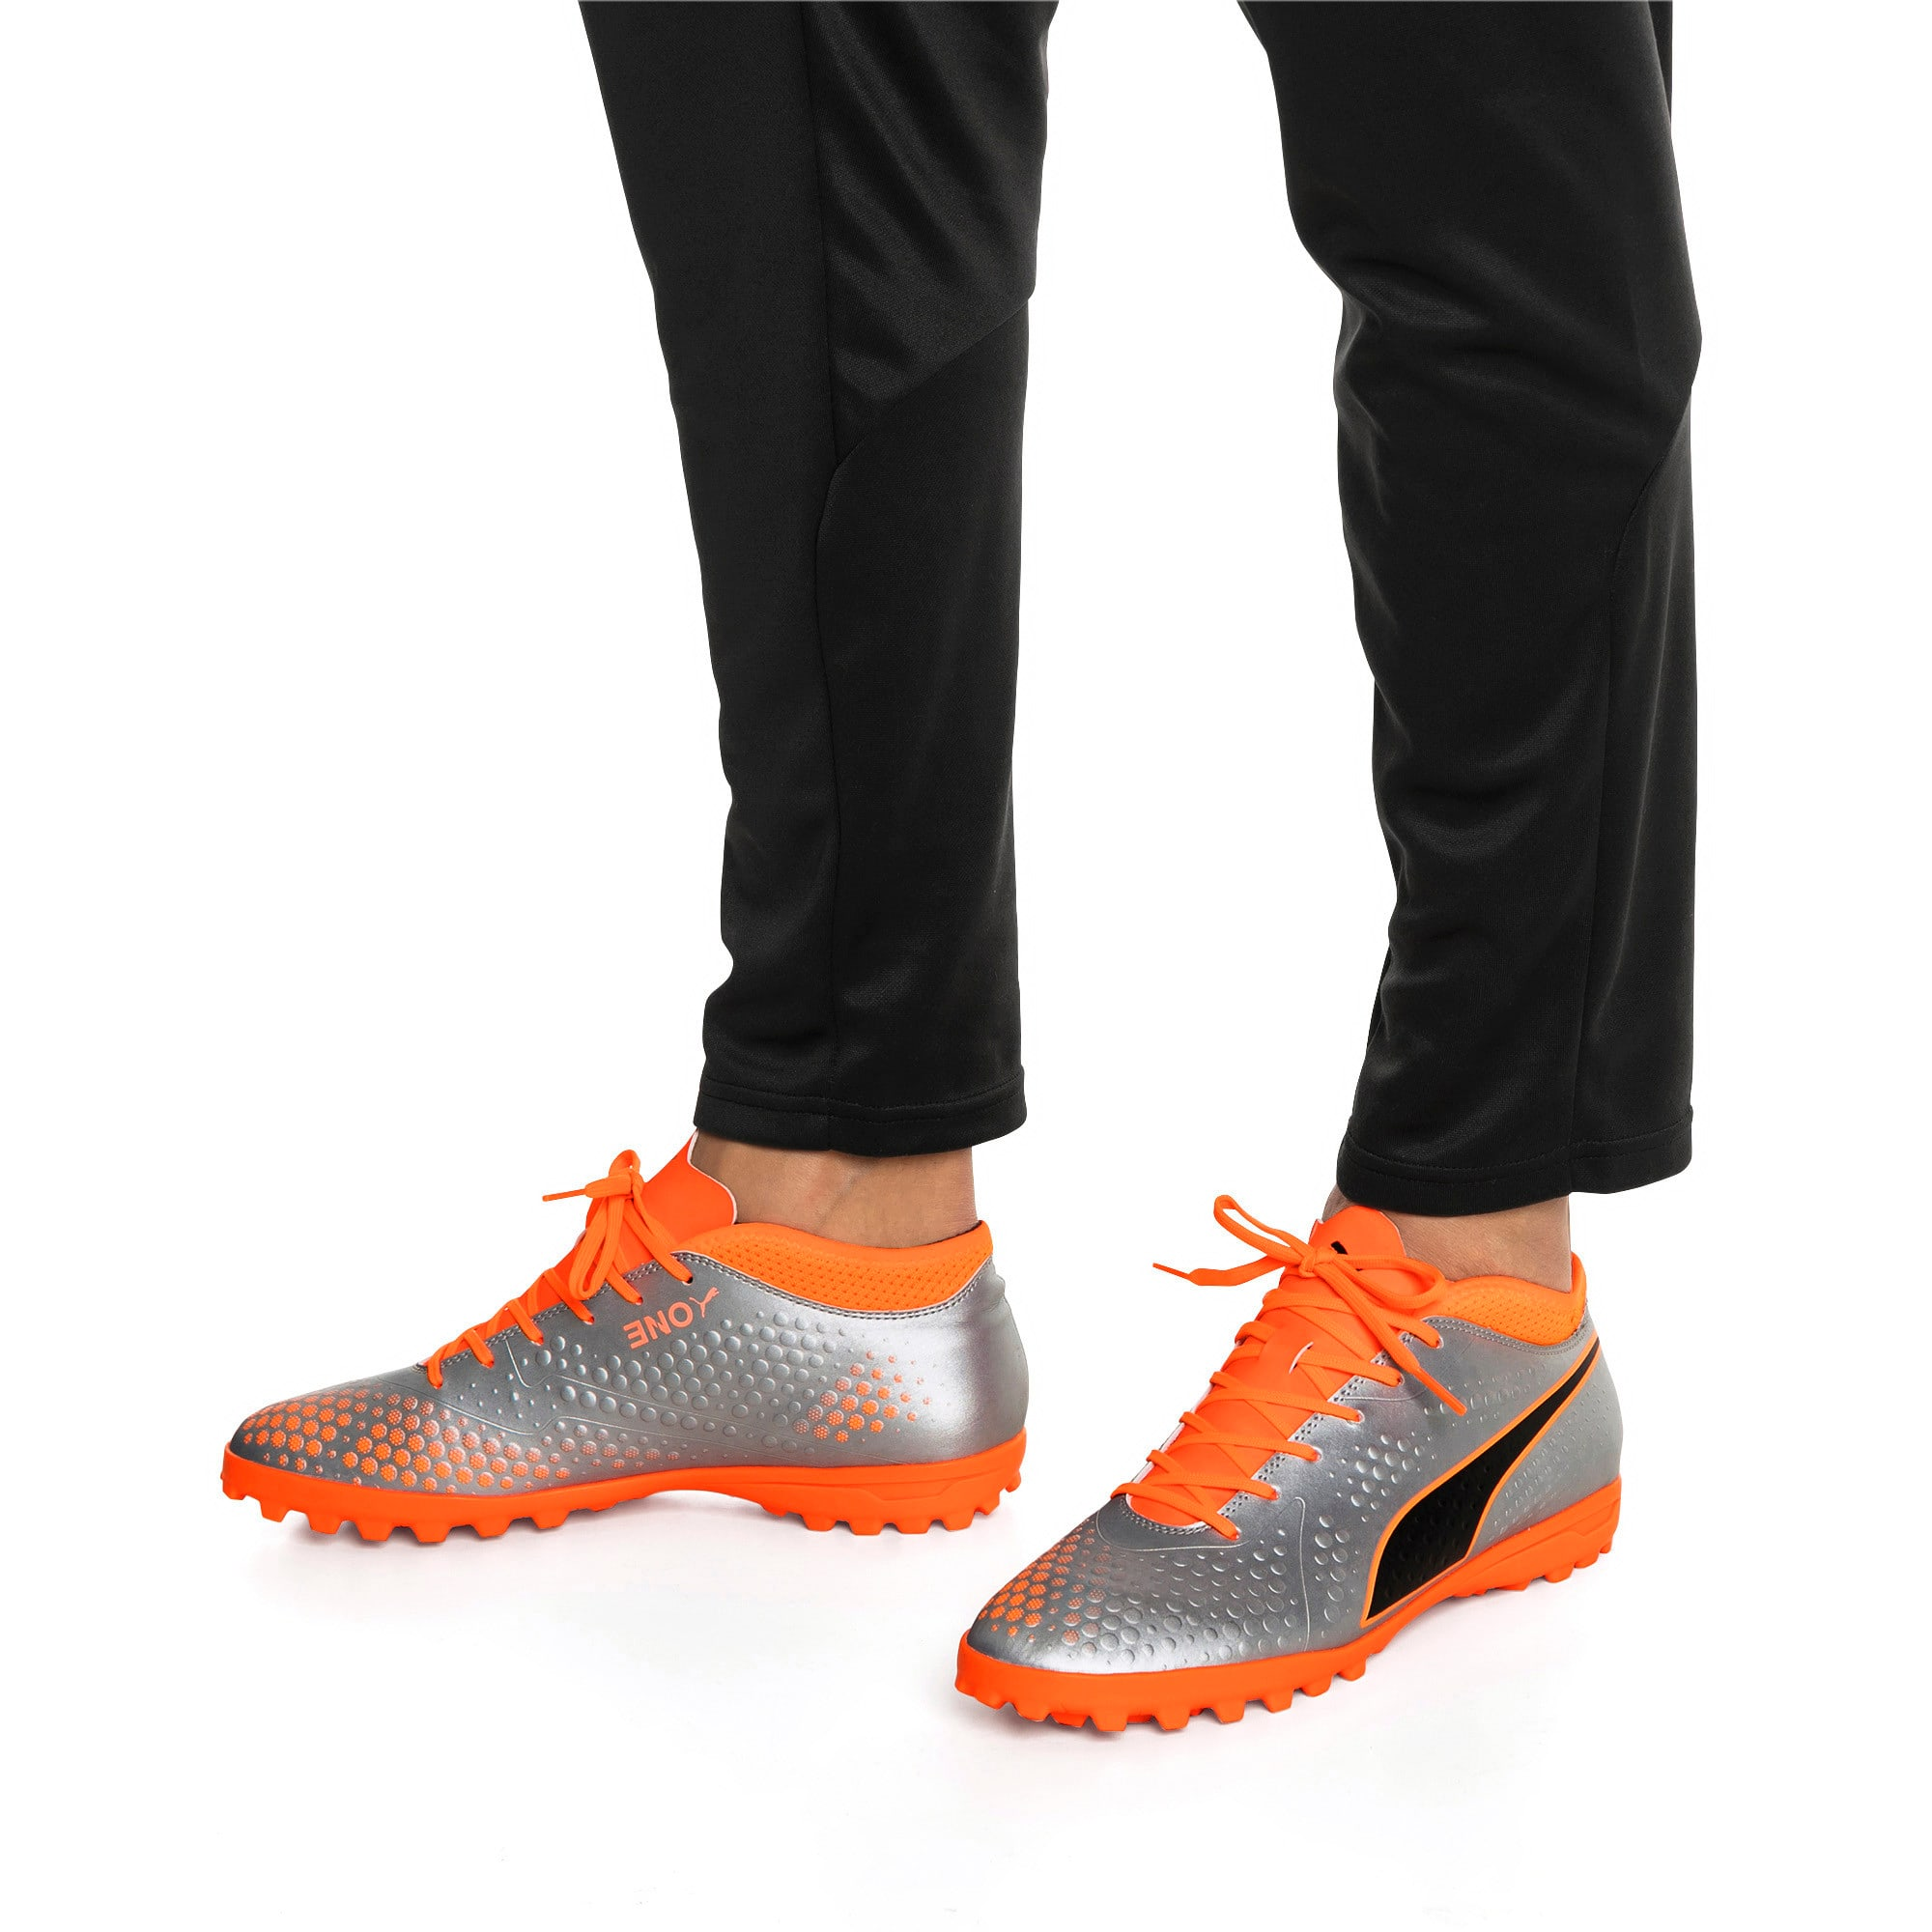 Thumbnail 7 of PUMA ONE 4 Synthetic TT Men's Football Boots, Silver-Orange-Black, medium-IND